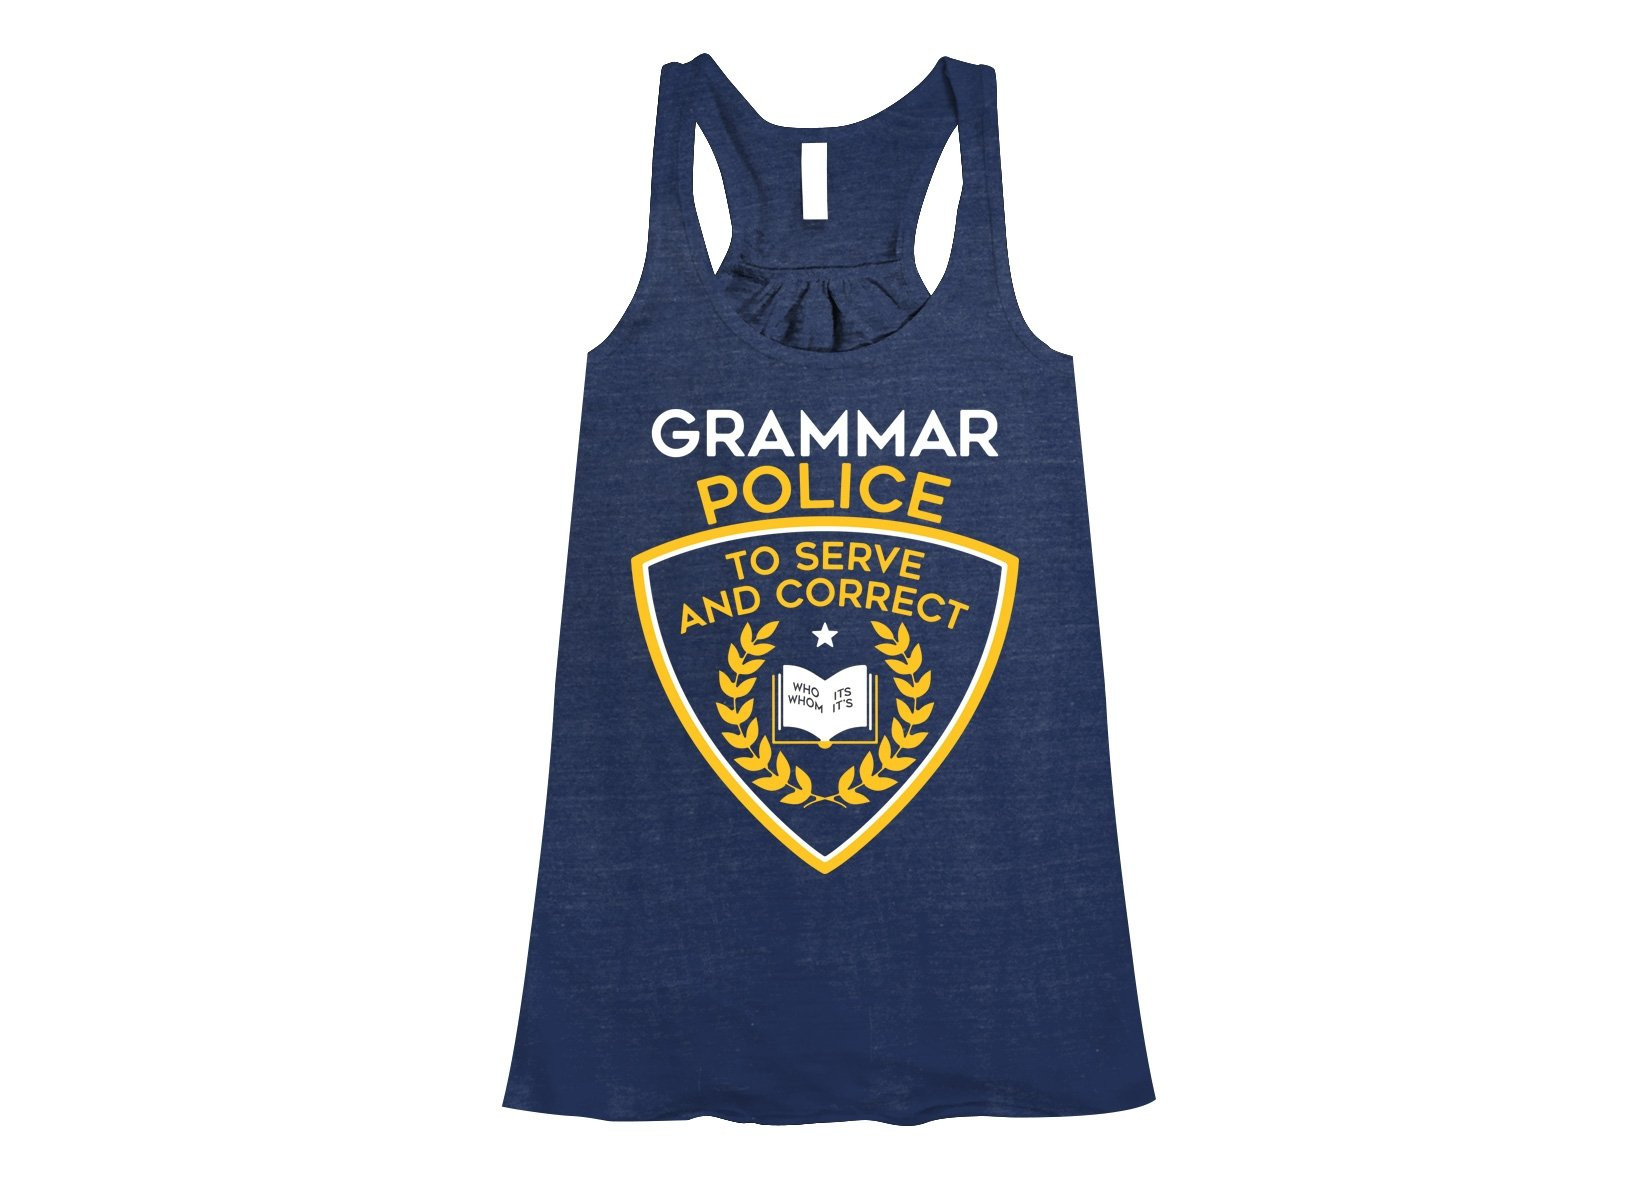 Grammar Police on Womens Tanks T-Shirt